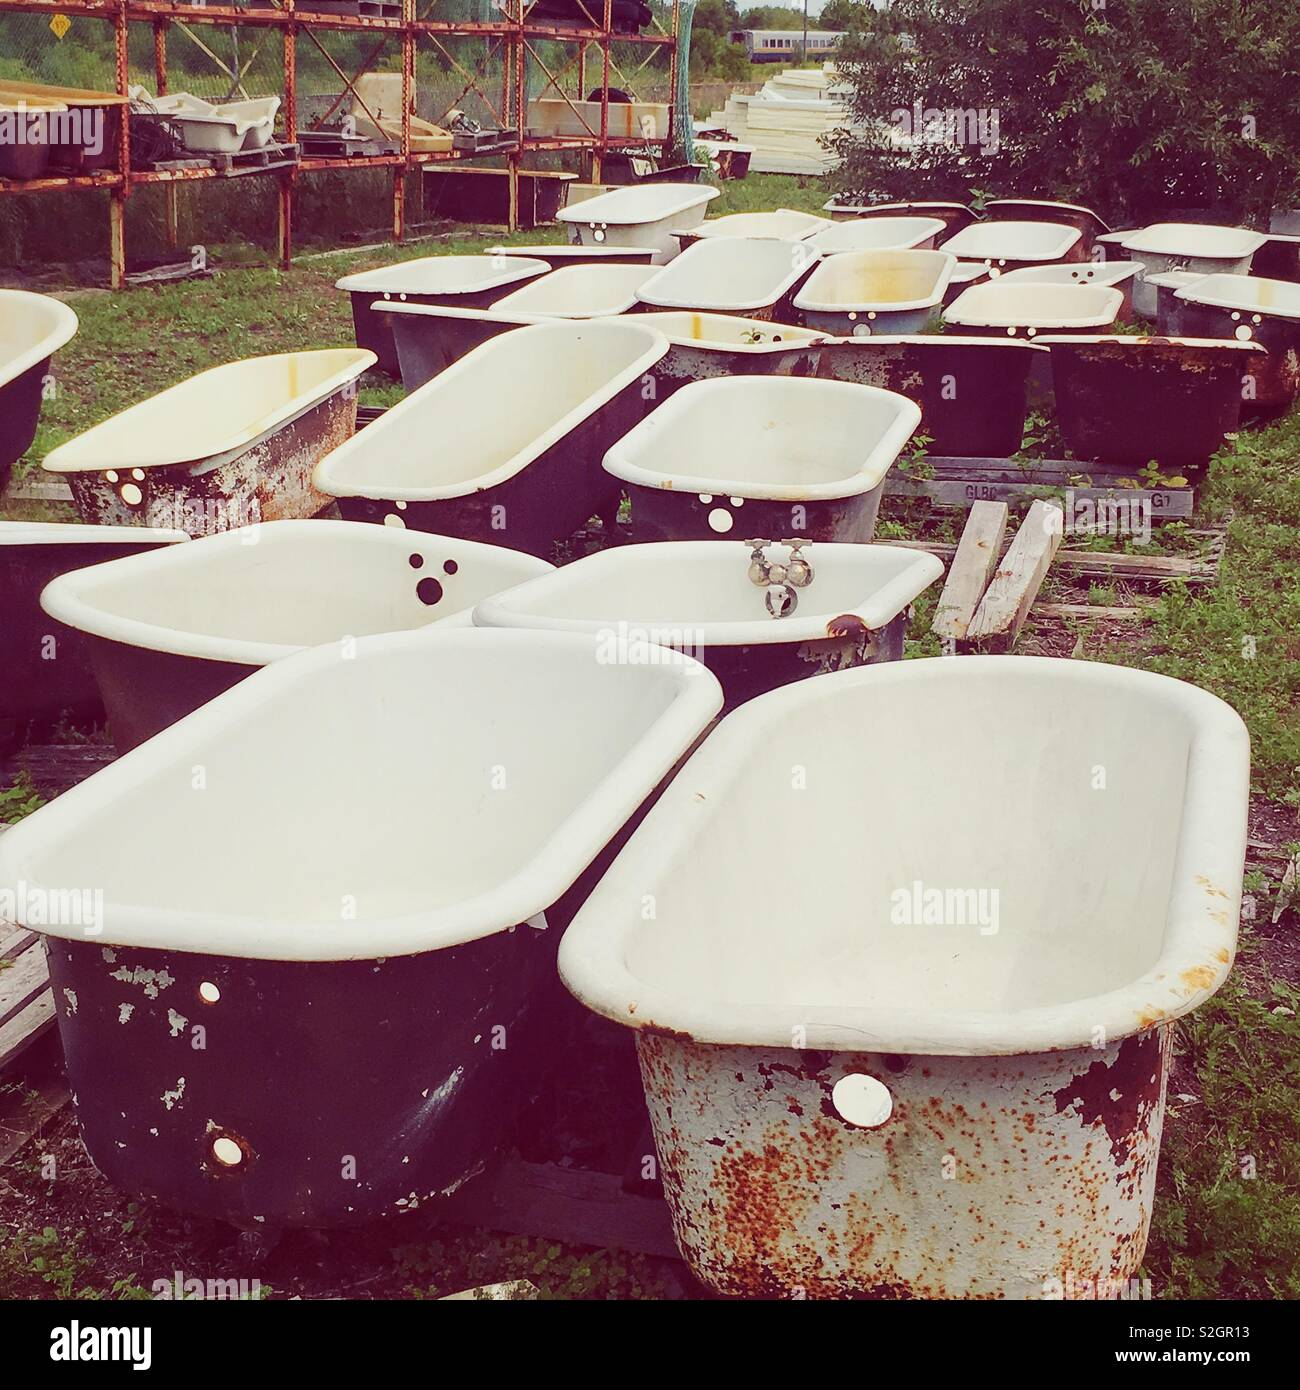 Bath tub resting grounds, grouping of vintage bathtubs stored outdoors in a field. - Stock Image